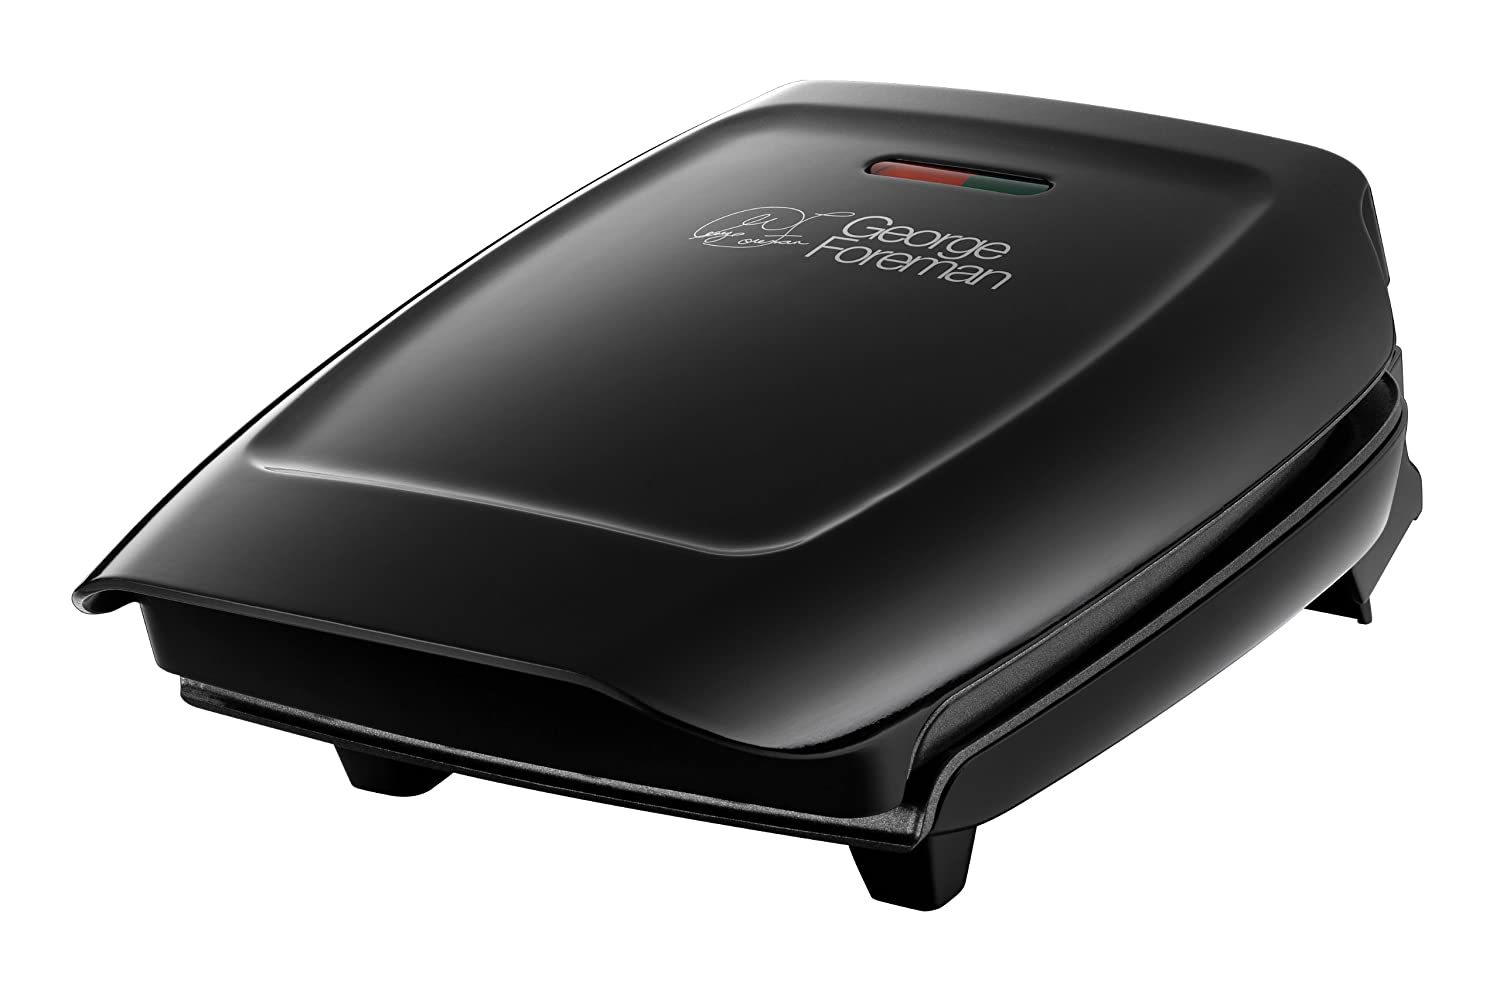 George foreman 18850 three 3 portion compact grill black and drip tray new ebay - Drip tray george foreman grill ...